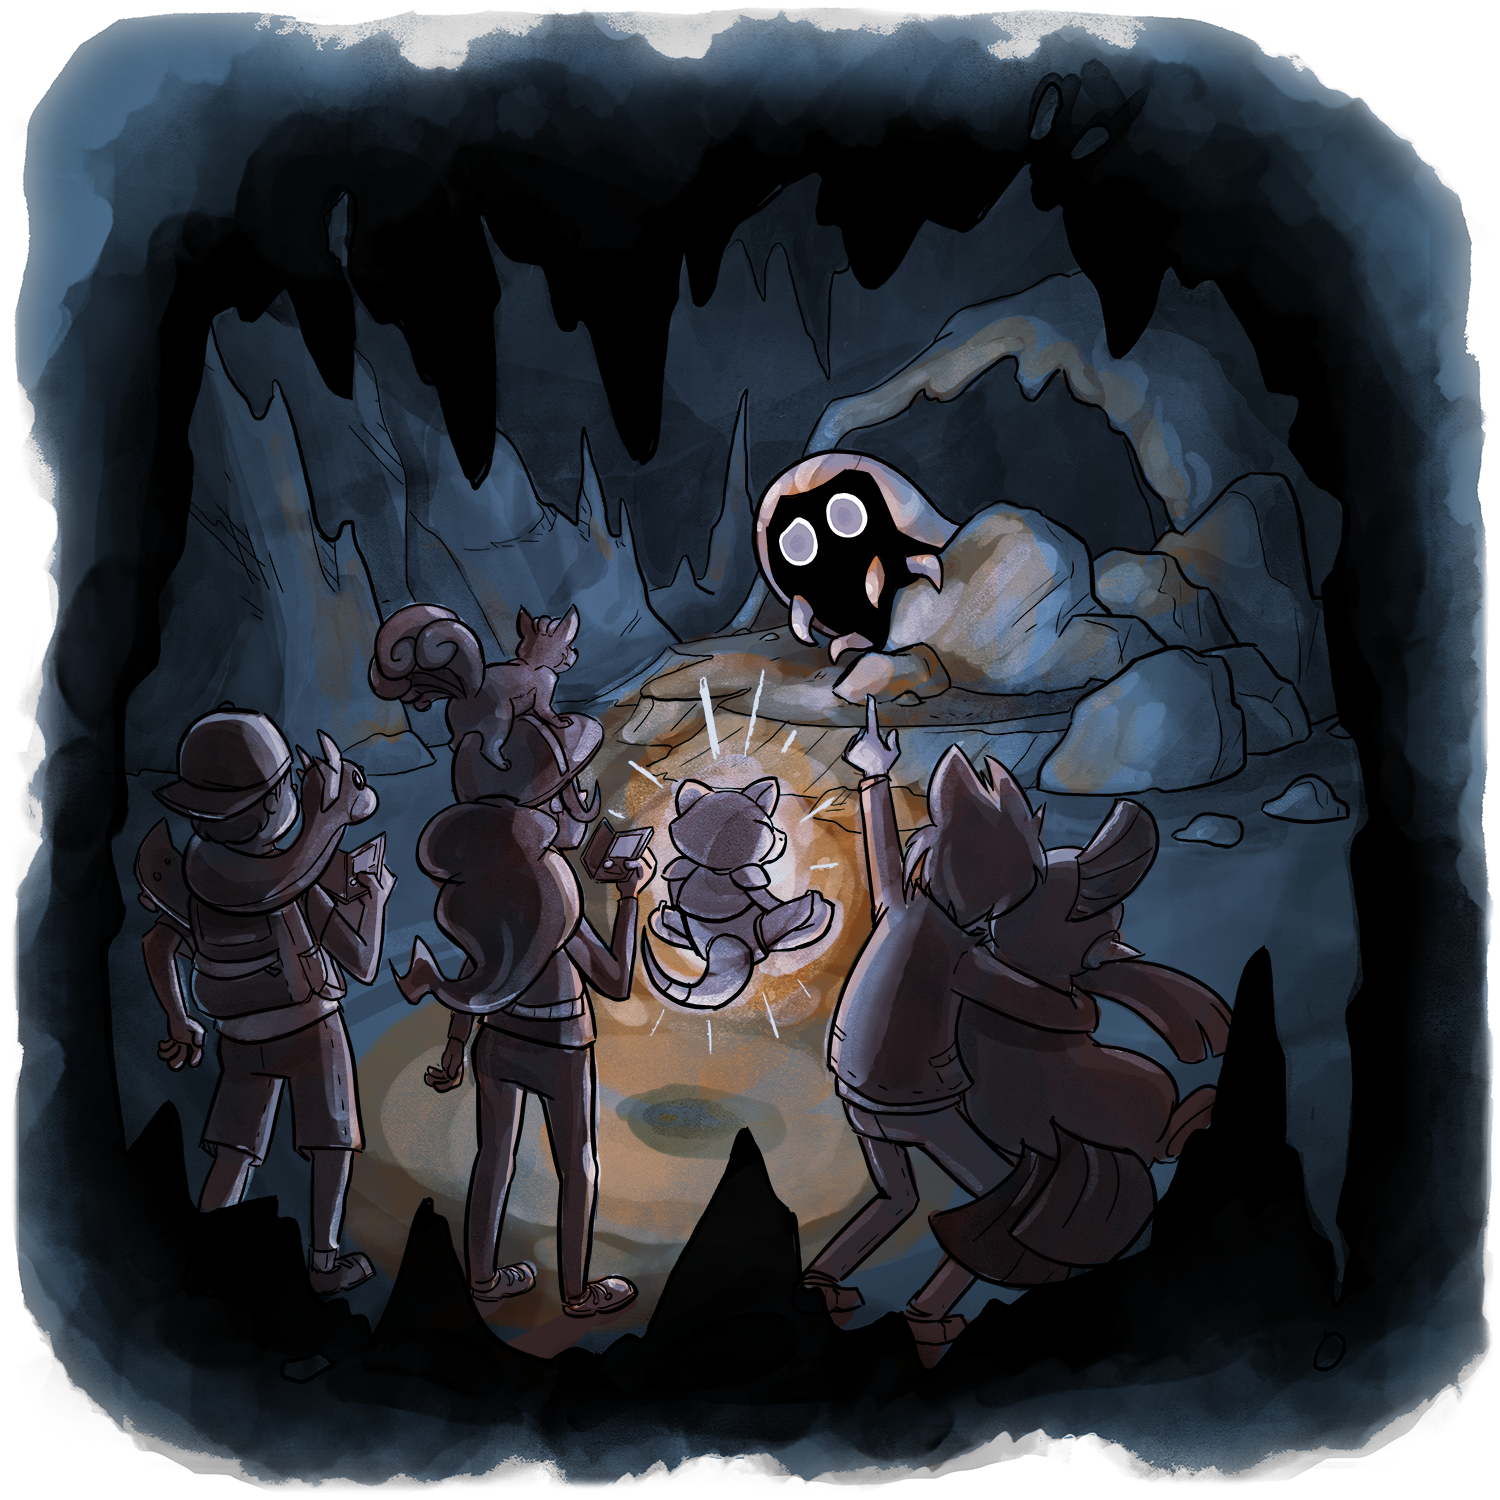 In a dark, creepy cave and illuminated by an Debbie the Abra's light, Skip, Candace, and Xander have discovered a Kabuto crawling out from behind a rock.